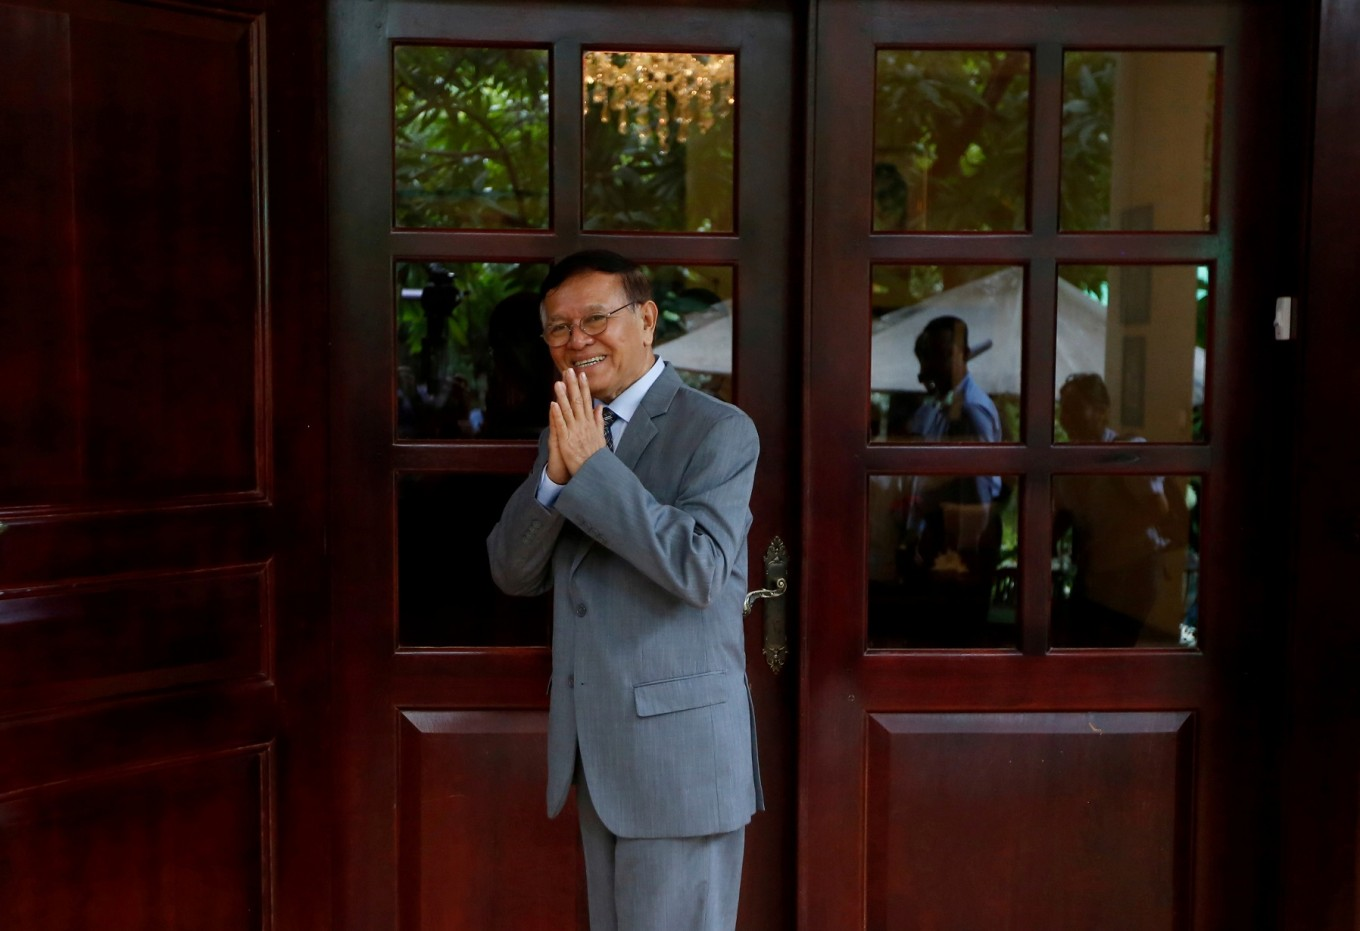 Cambodia to Open Treason Trial of Opposition Leader Kem Sokha